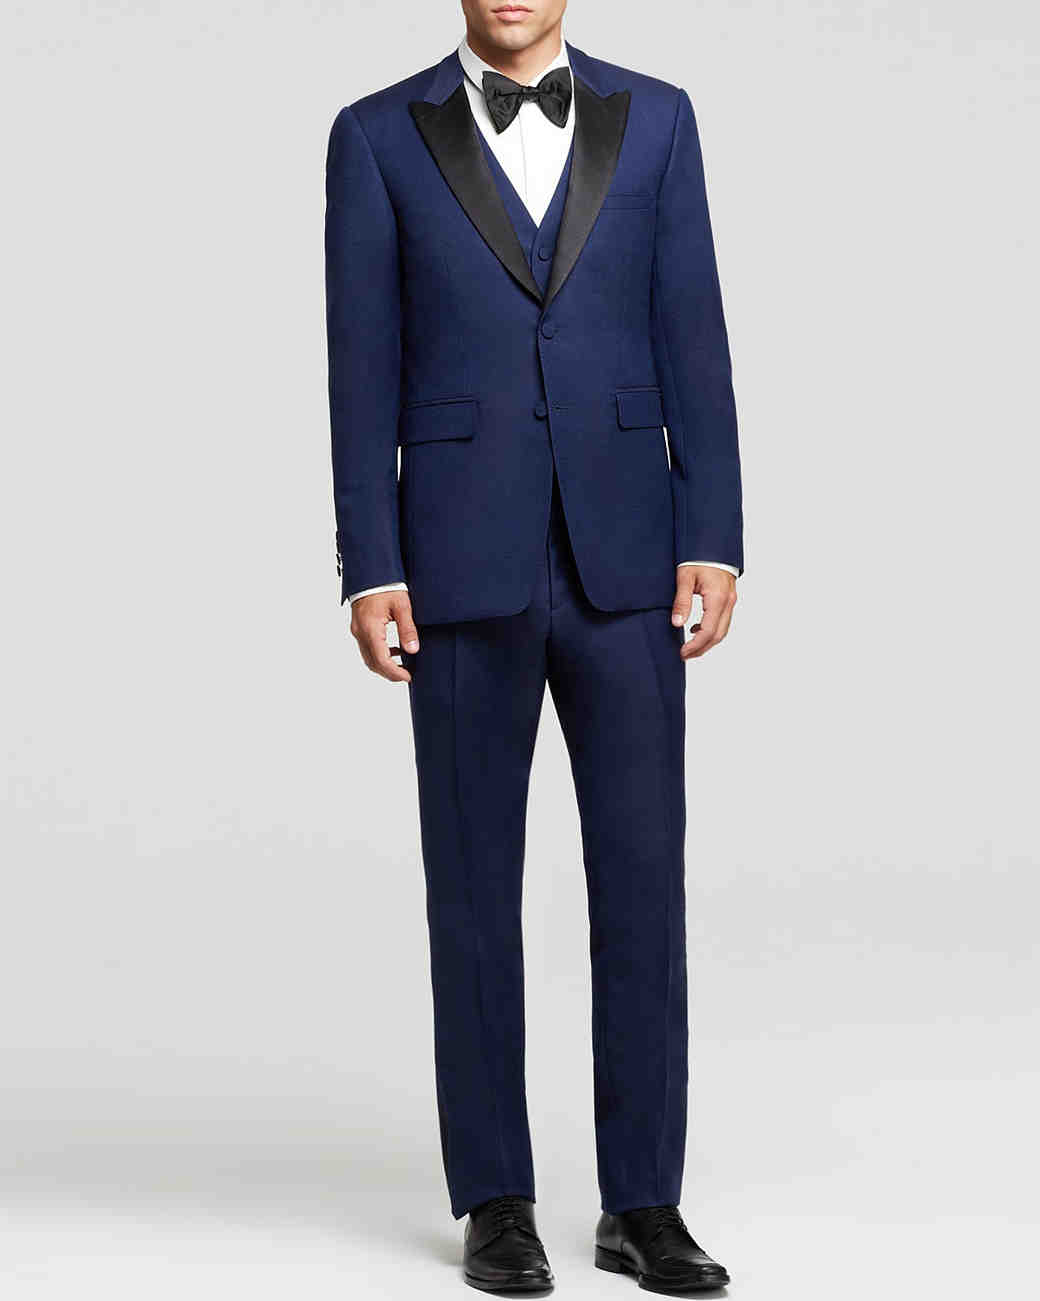 fall-groom-suits-bloomingdales-burberry-london-tuxedo-1014.jpg